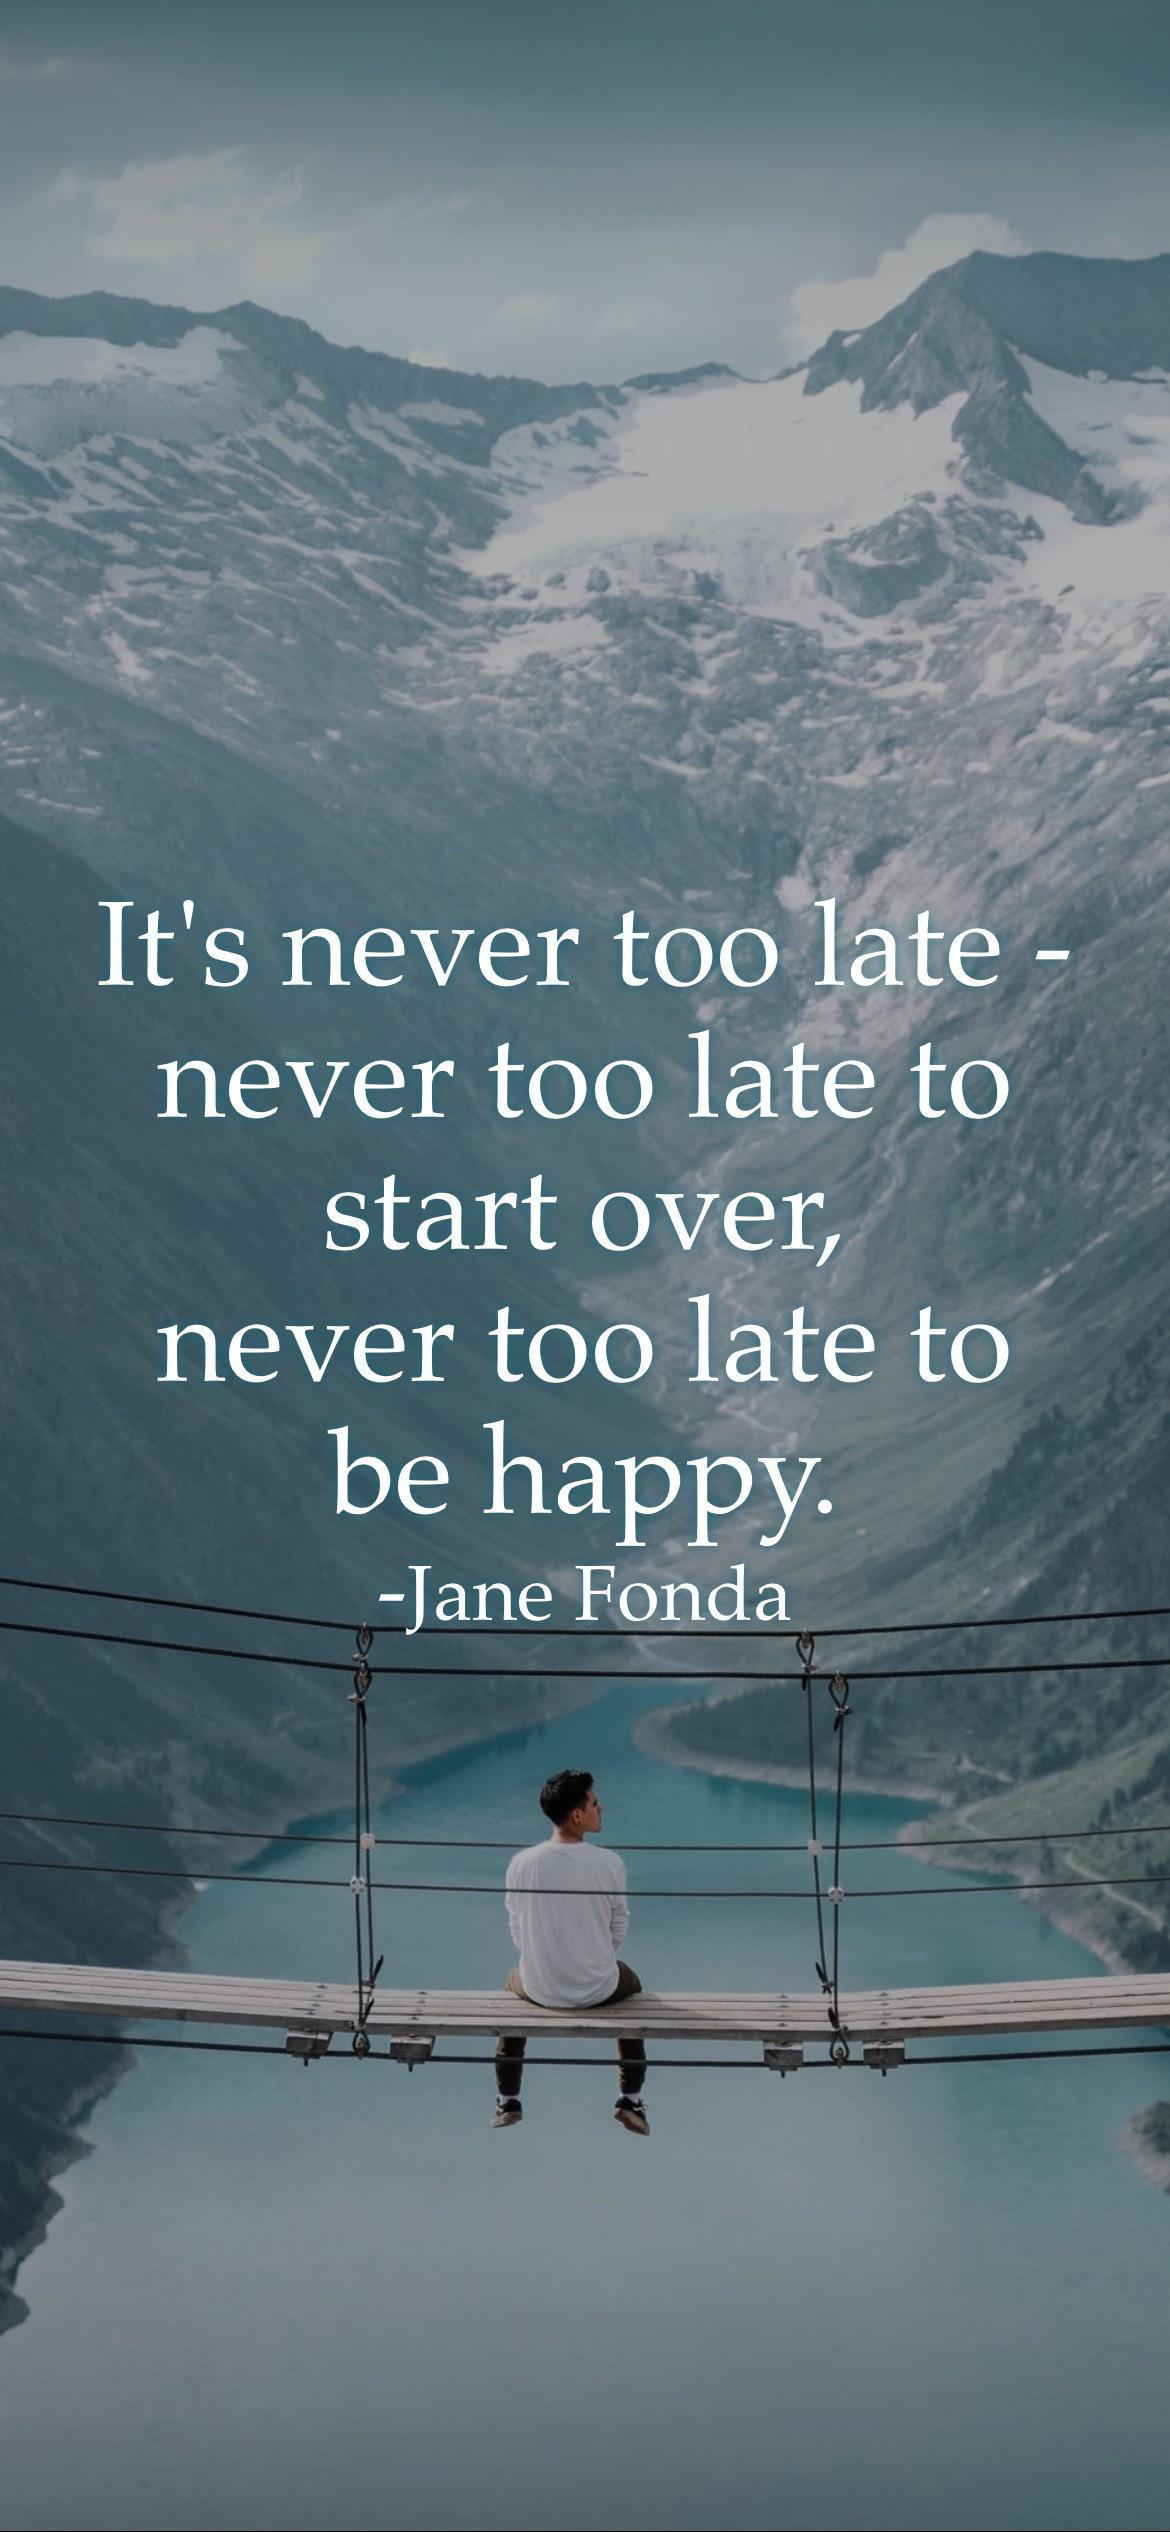 It's never too late – never too late to start over, never too late to be happy. -Jane Fonda [2532 x 1170 p]